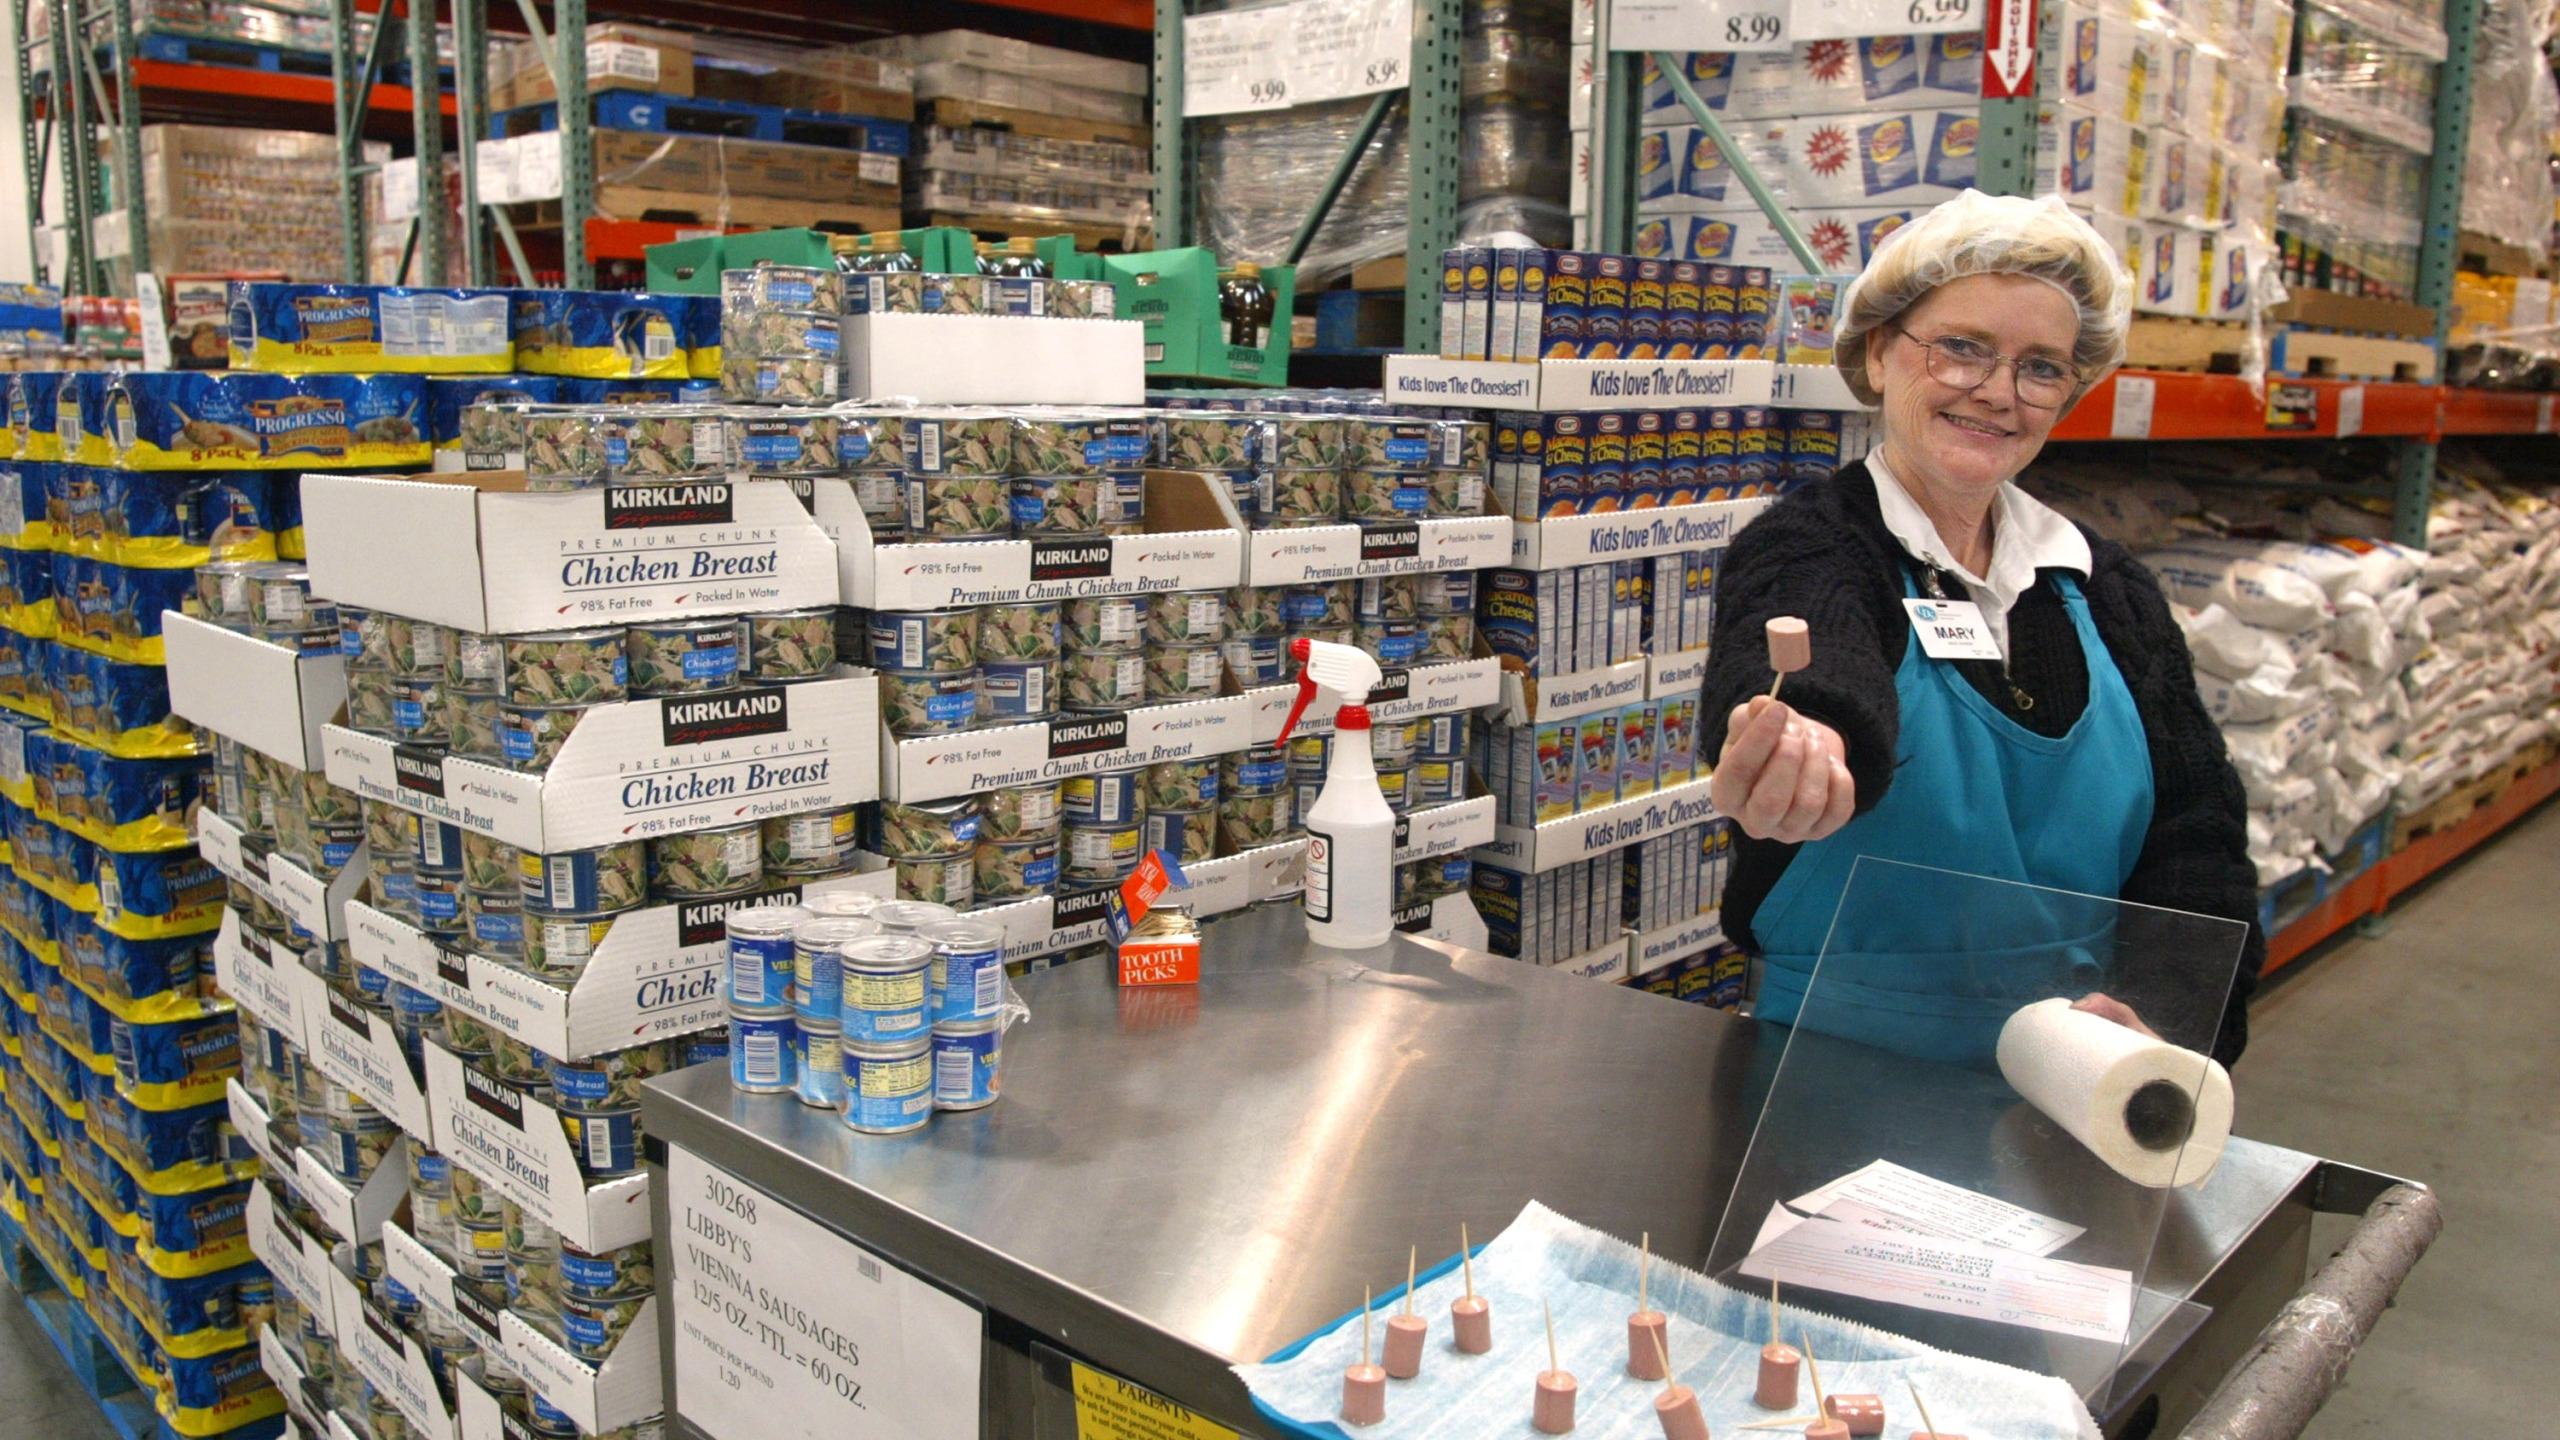 402065 04: Mary LaRocca offers a sample of Libby's Vienna Sausage in a Costco Wholesale store March 8, 2002 in Niles, IL. Warehouse retailer Costco Wholesale Corp. has reported higher quarterly profits as the promise of bulk goods at bargain prices resonated with consumers in the U.S. recession. Warehouse retailers charge customers an annual membership fee, typically $35 to $45, to shop at clubs that offer deep discounts on bulk quantities of items like food and household cleaners. (Photo by Tim Boyle/Getty Images)